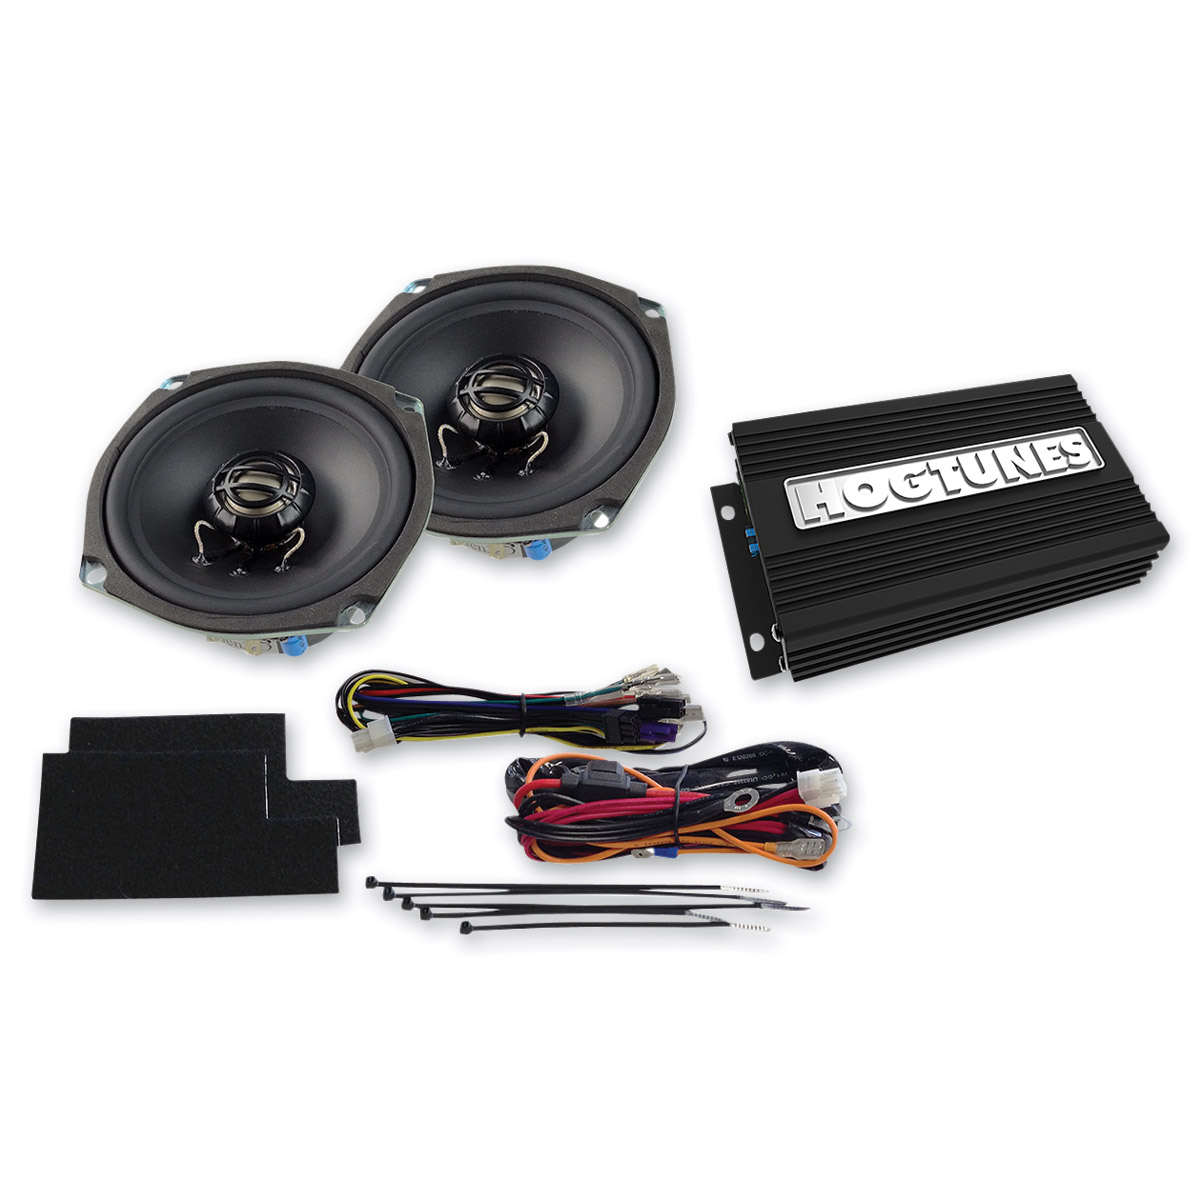 hight resolution of hogtunes ldquo rev aa rdquo amp and speaker kit j p cycles select model atilde151 atilde151 silverado radio wiring chevrolet silverado radio wiring diagram